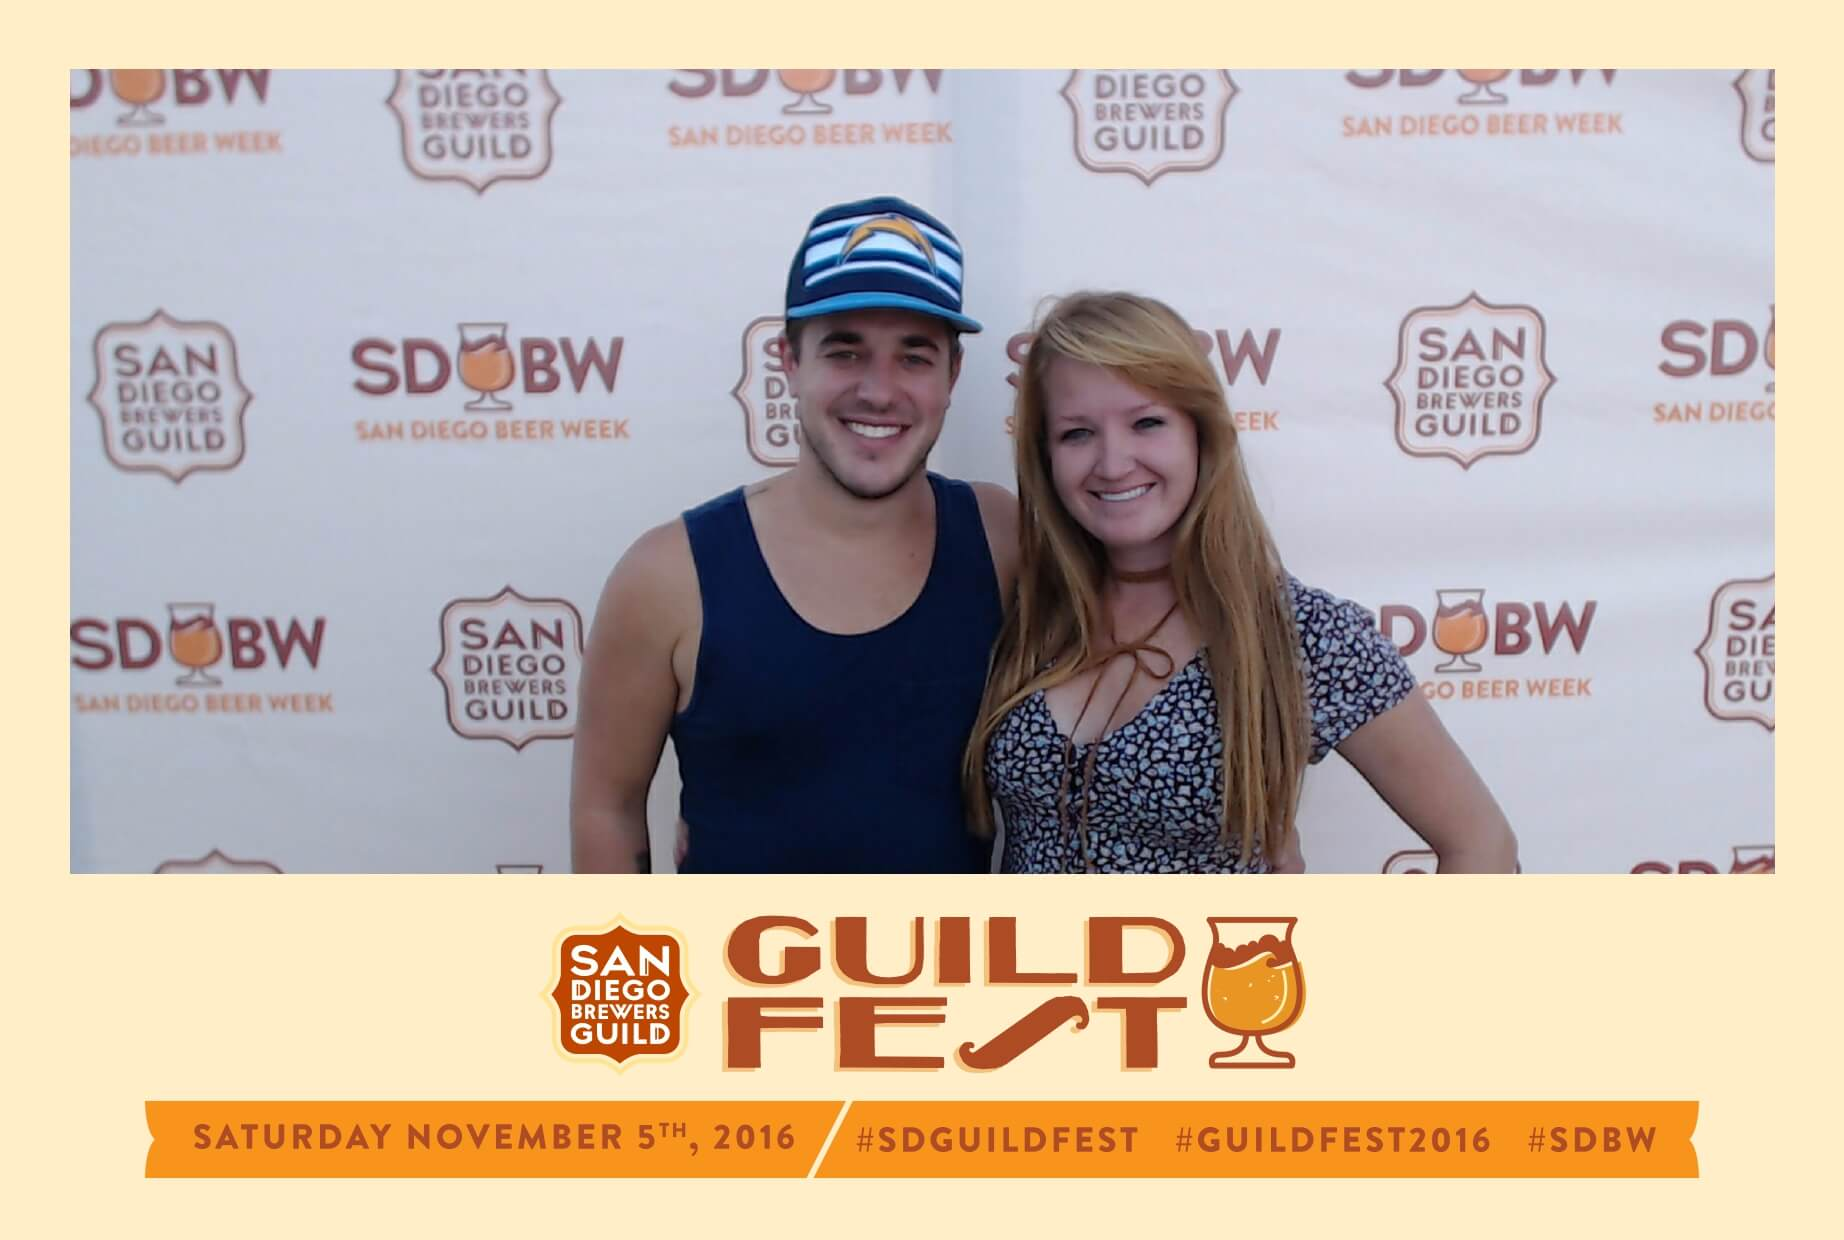 san diego guild fest photo booth